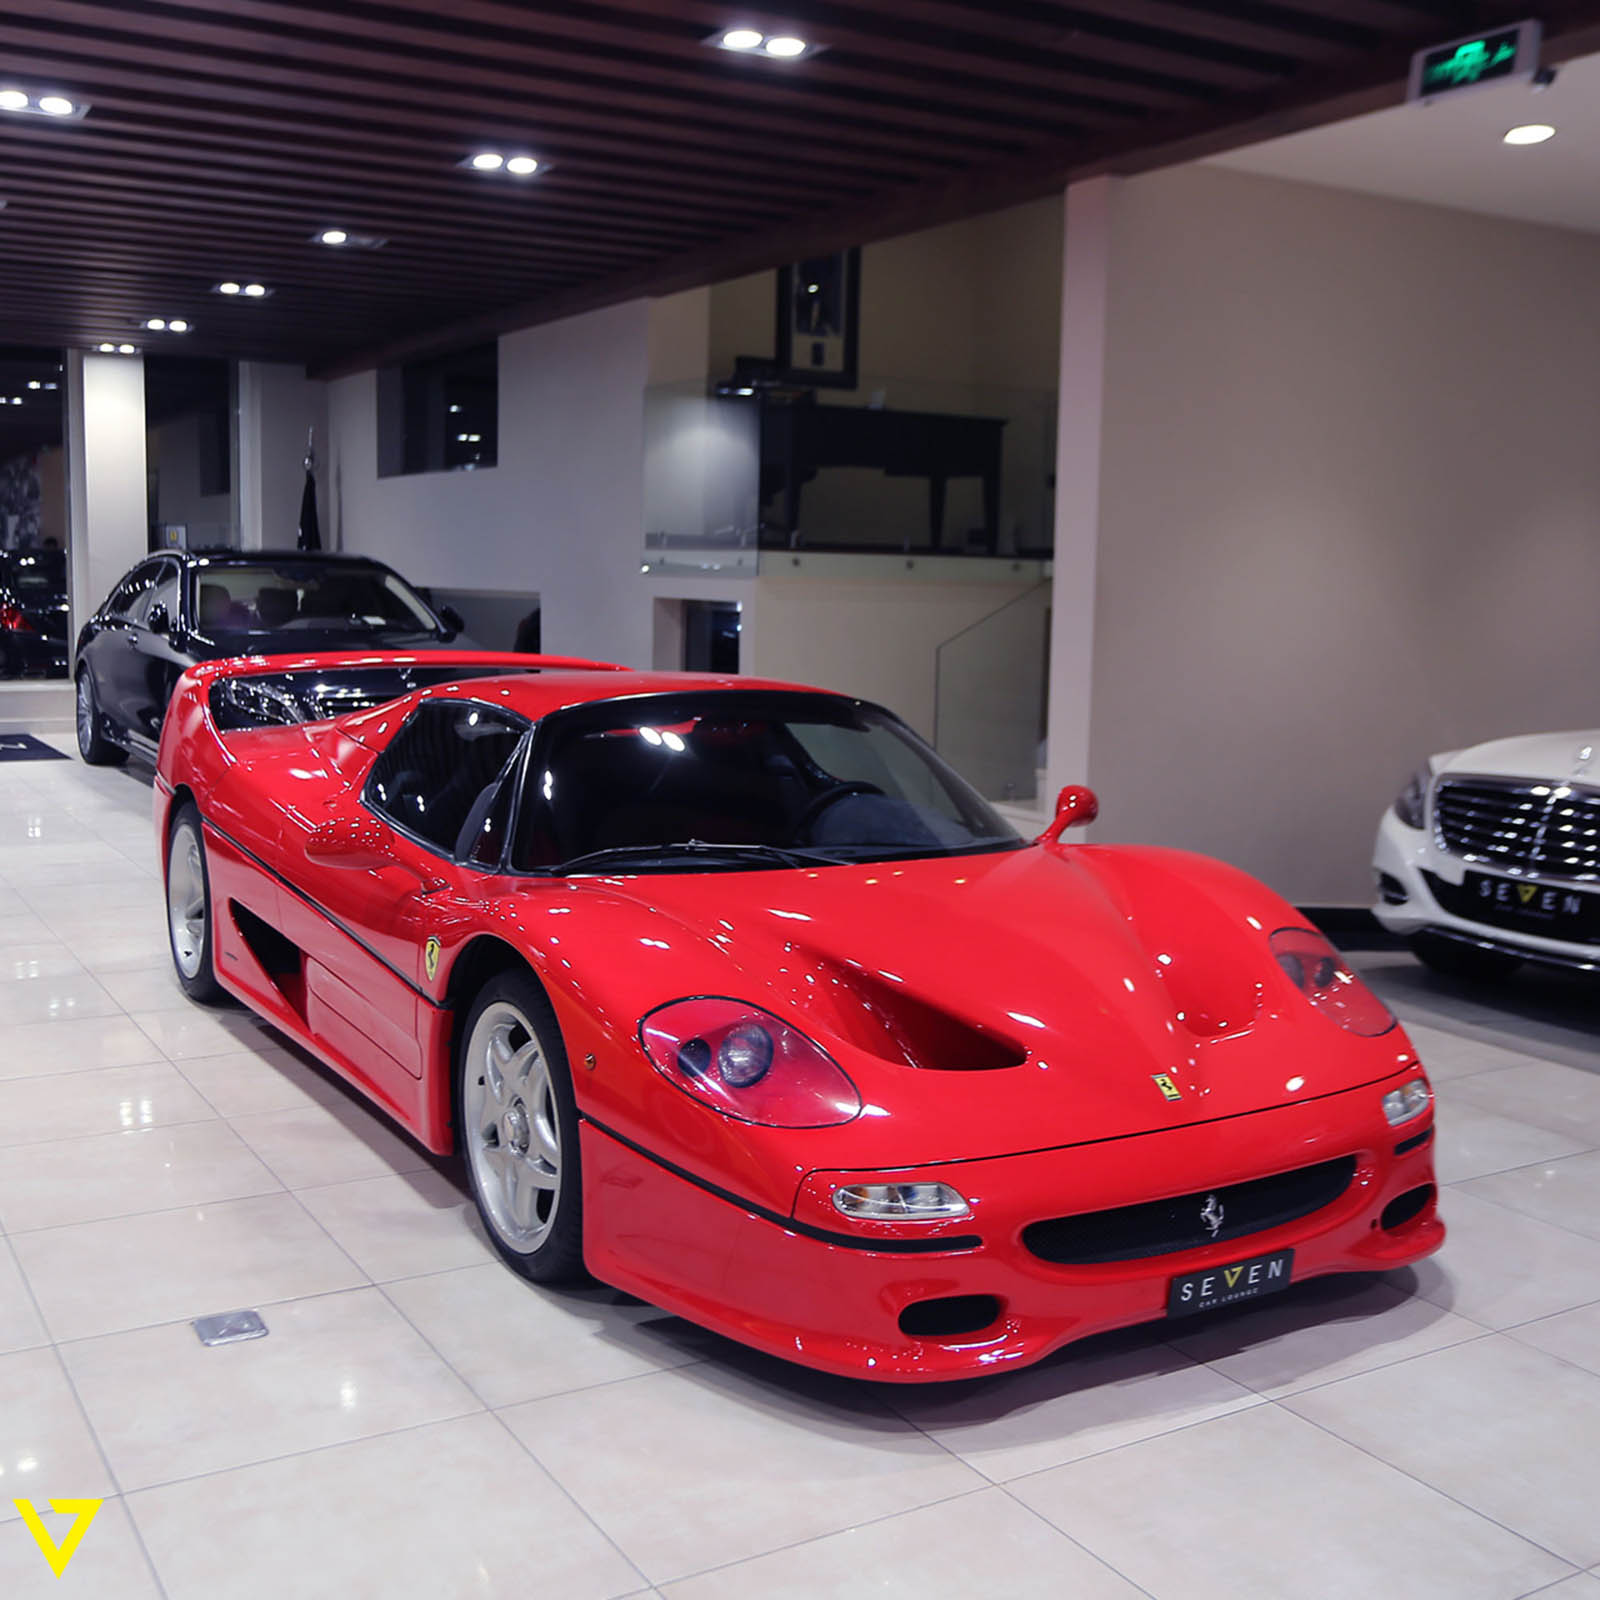 seven-car-lounge-showroom-so-huu-4-mau-ferrari-noi-tieng